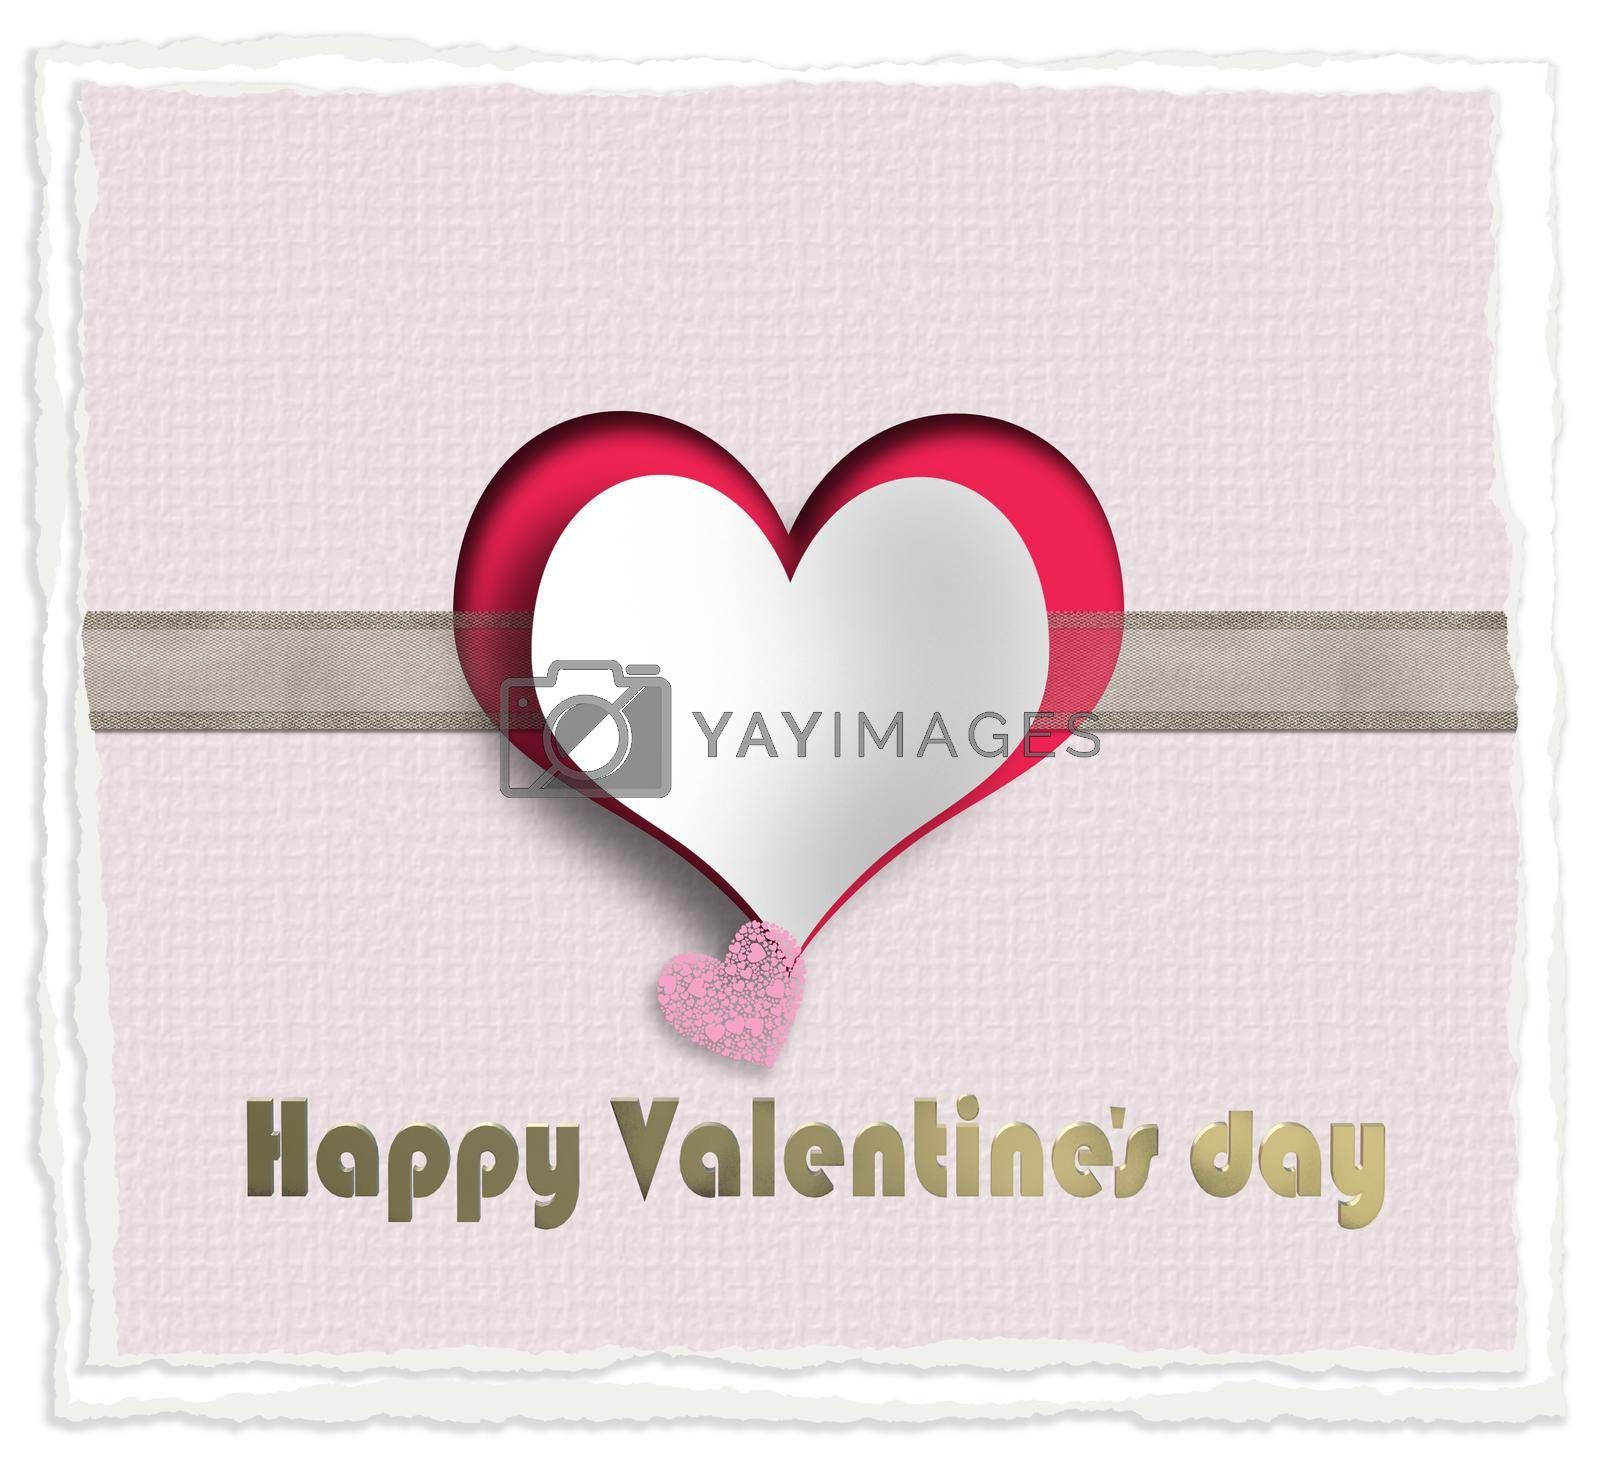 Cute love story, two hearts on pink background with ribbon, gold text Happy Valentines day. Valentines, wedding, love card. 3D illustration